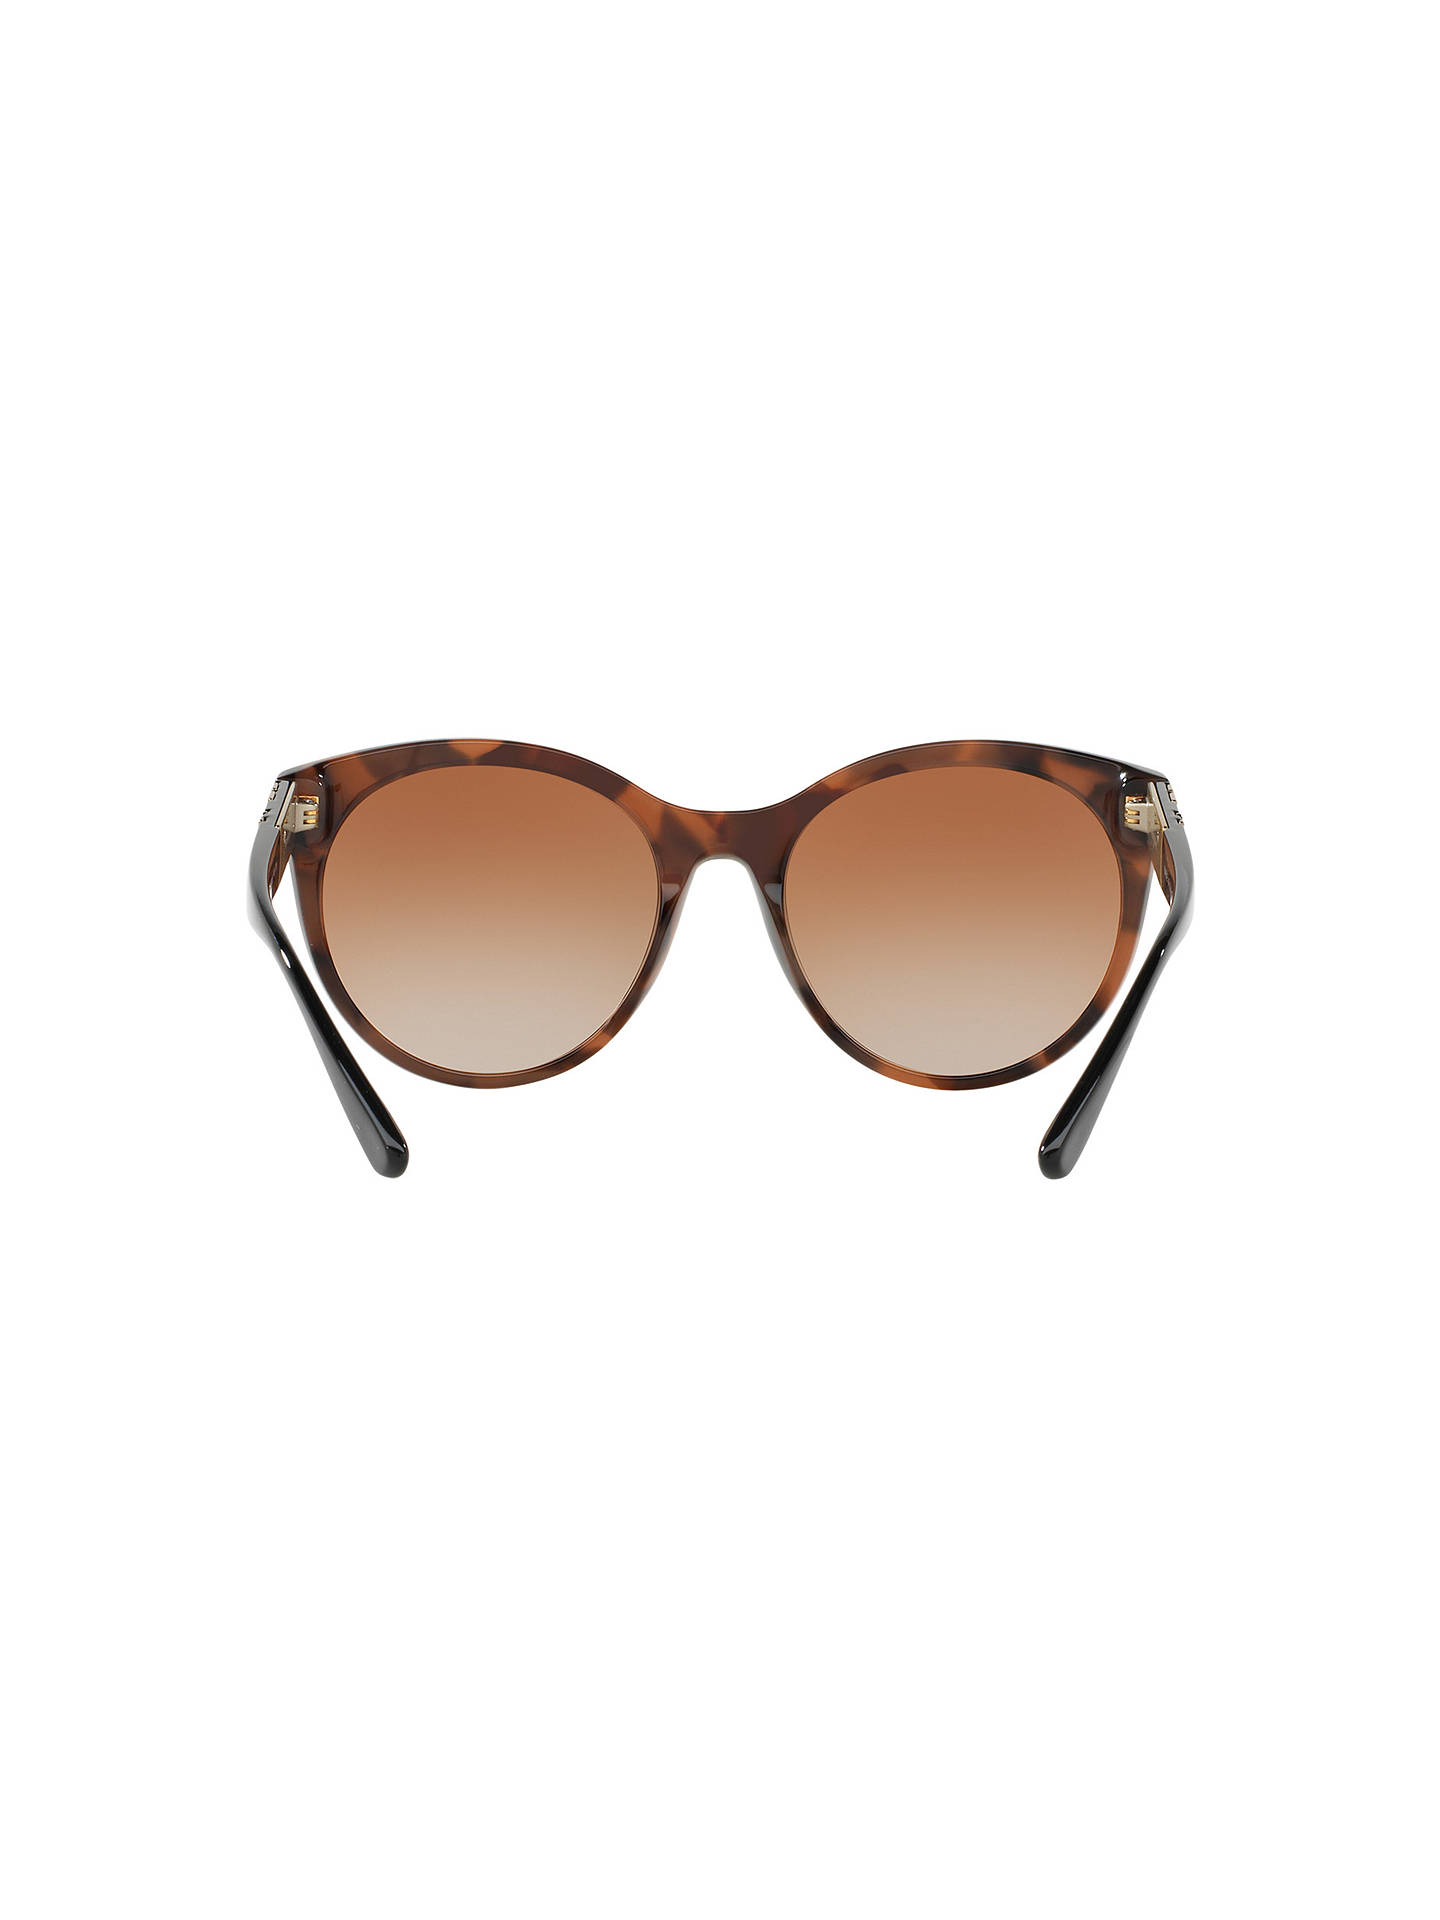 BuyBurberry BE4236 Oval Sunglasses, Tortoise/Brown Gradient Online at johnlewis.com